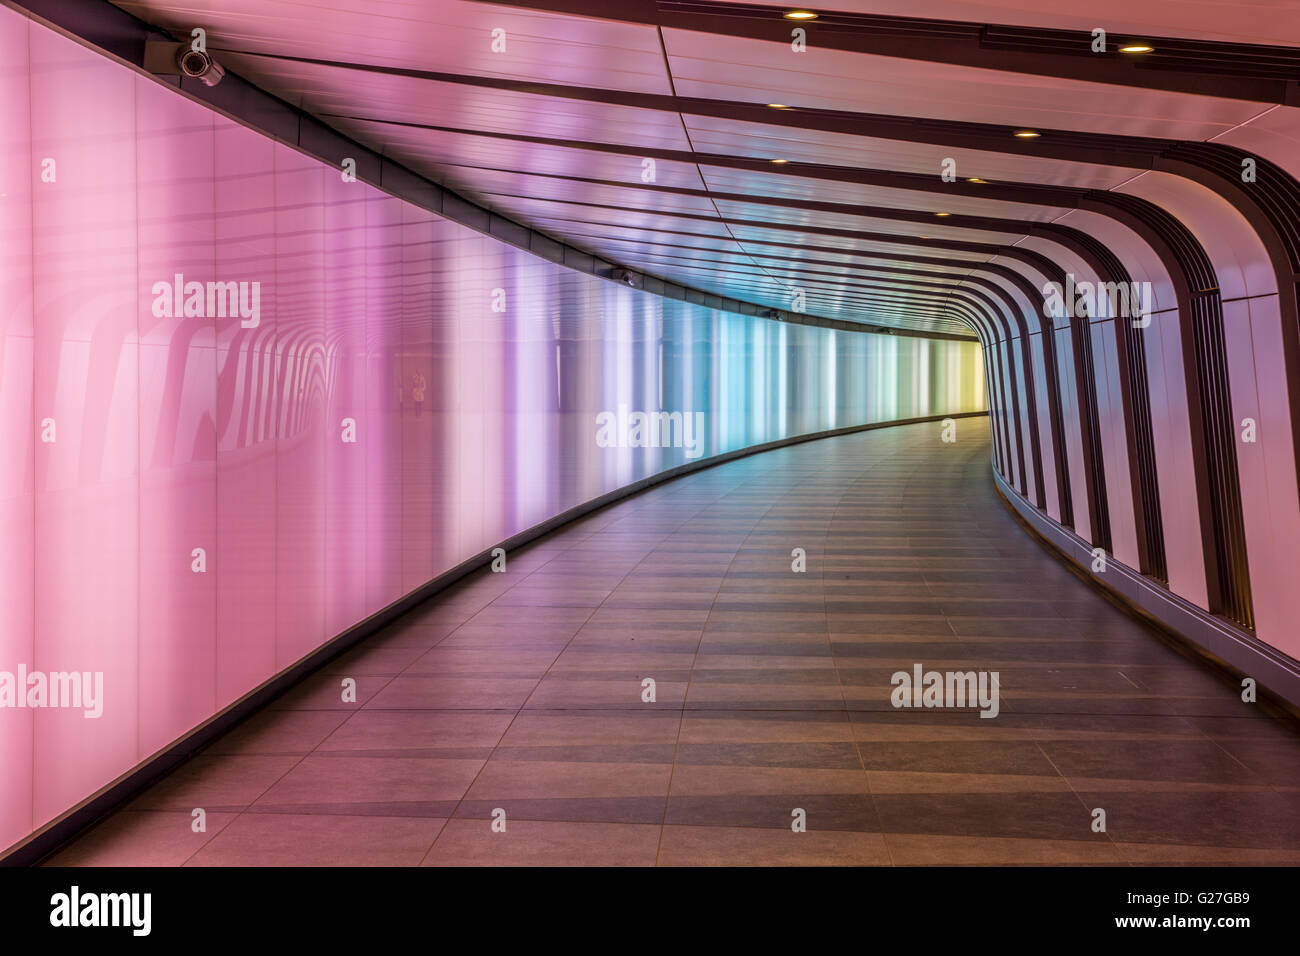 London, UK - May 20, 2017 - King's Cross futuristic looking tunnel, the 90 meters long curved pedestrian tunnel - Stock Image